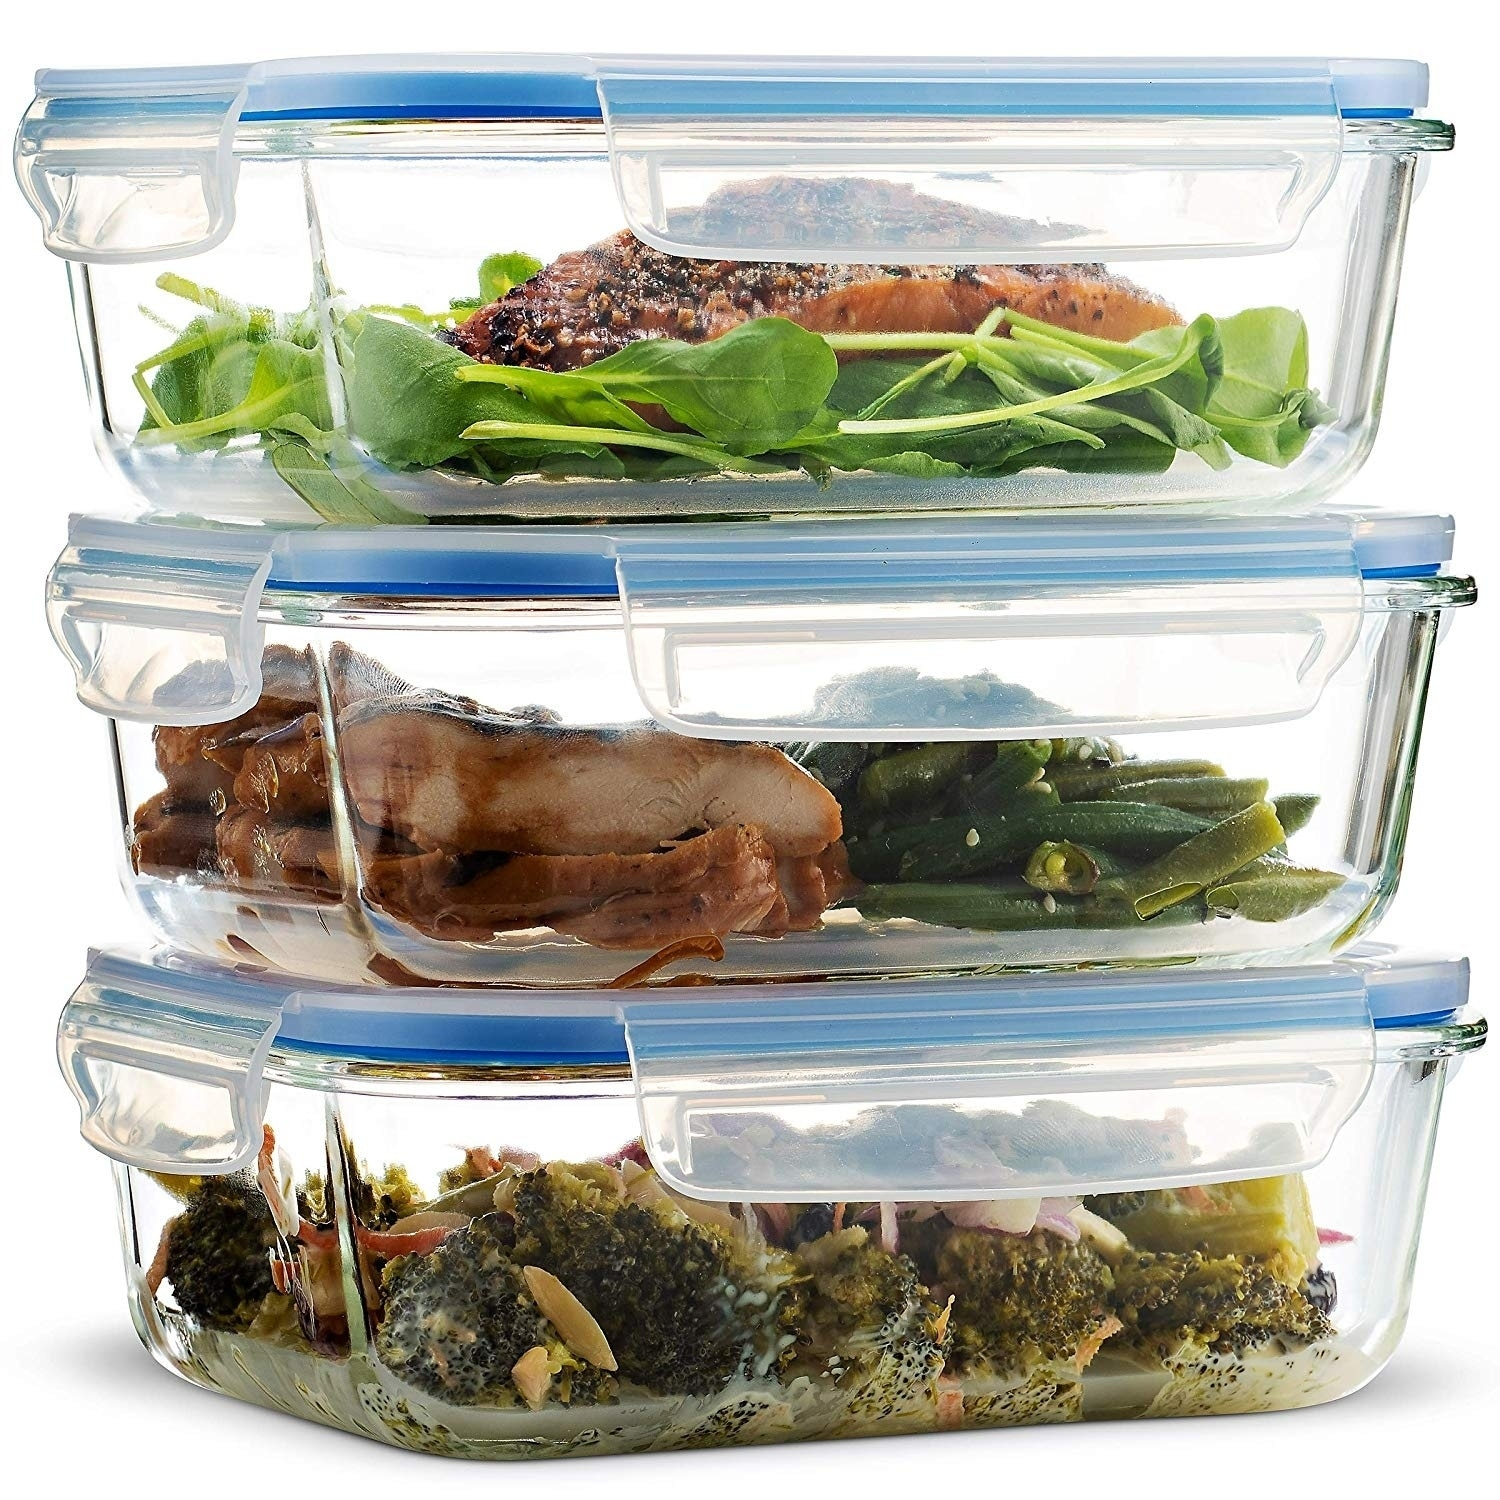 3425b8b31e5 Details about Glass Food Storage Containers (3 Pack 35 oz) Airtight Snap  Locking Lid